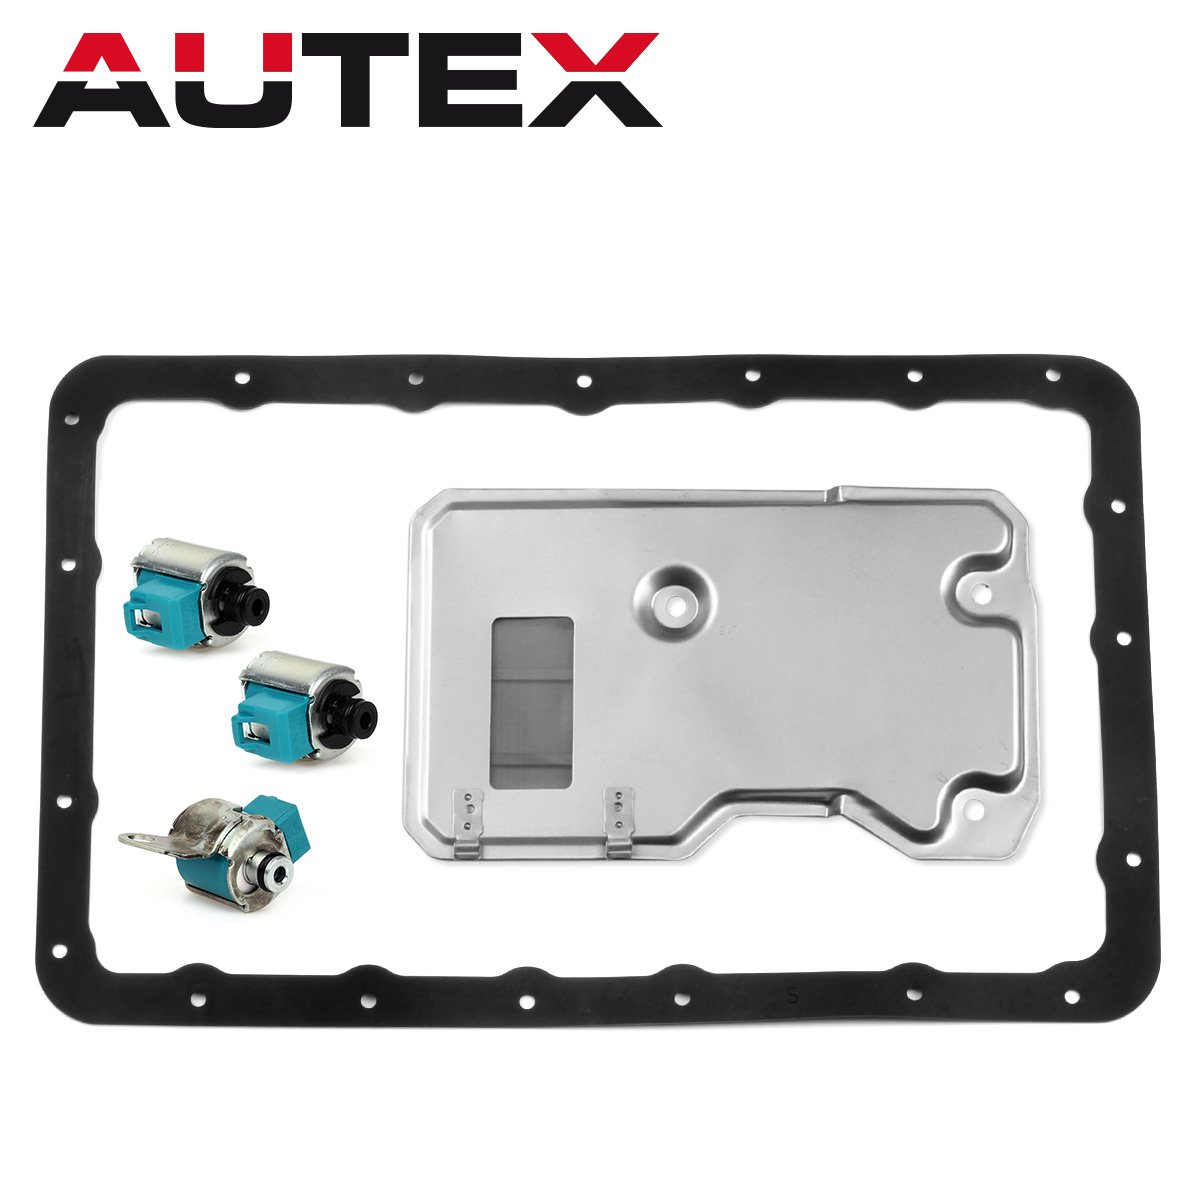 Amazon.com: AUTEX A340E A340F A340G A340H Transmission Shift LockUp TCC  Solenoid Filter Gasket Kit (Set of 5) Compatible With Toyota Lexus 1985-UP:  ...